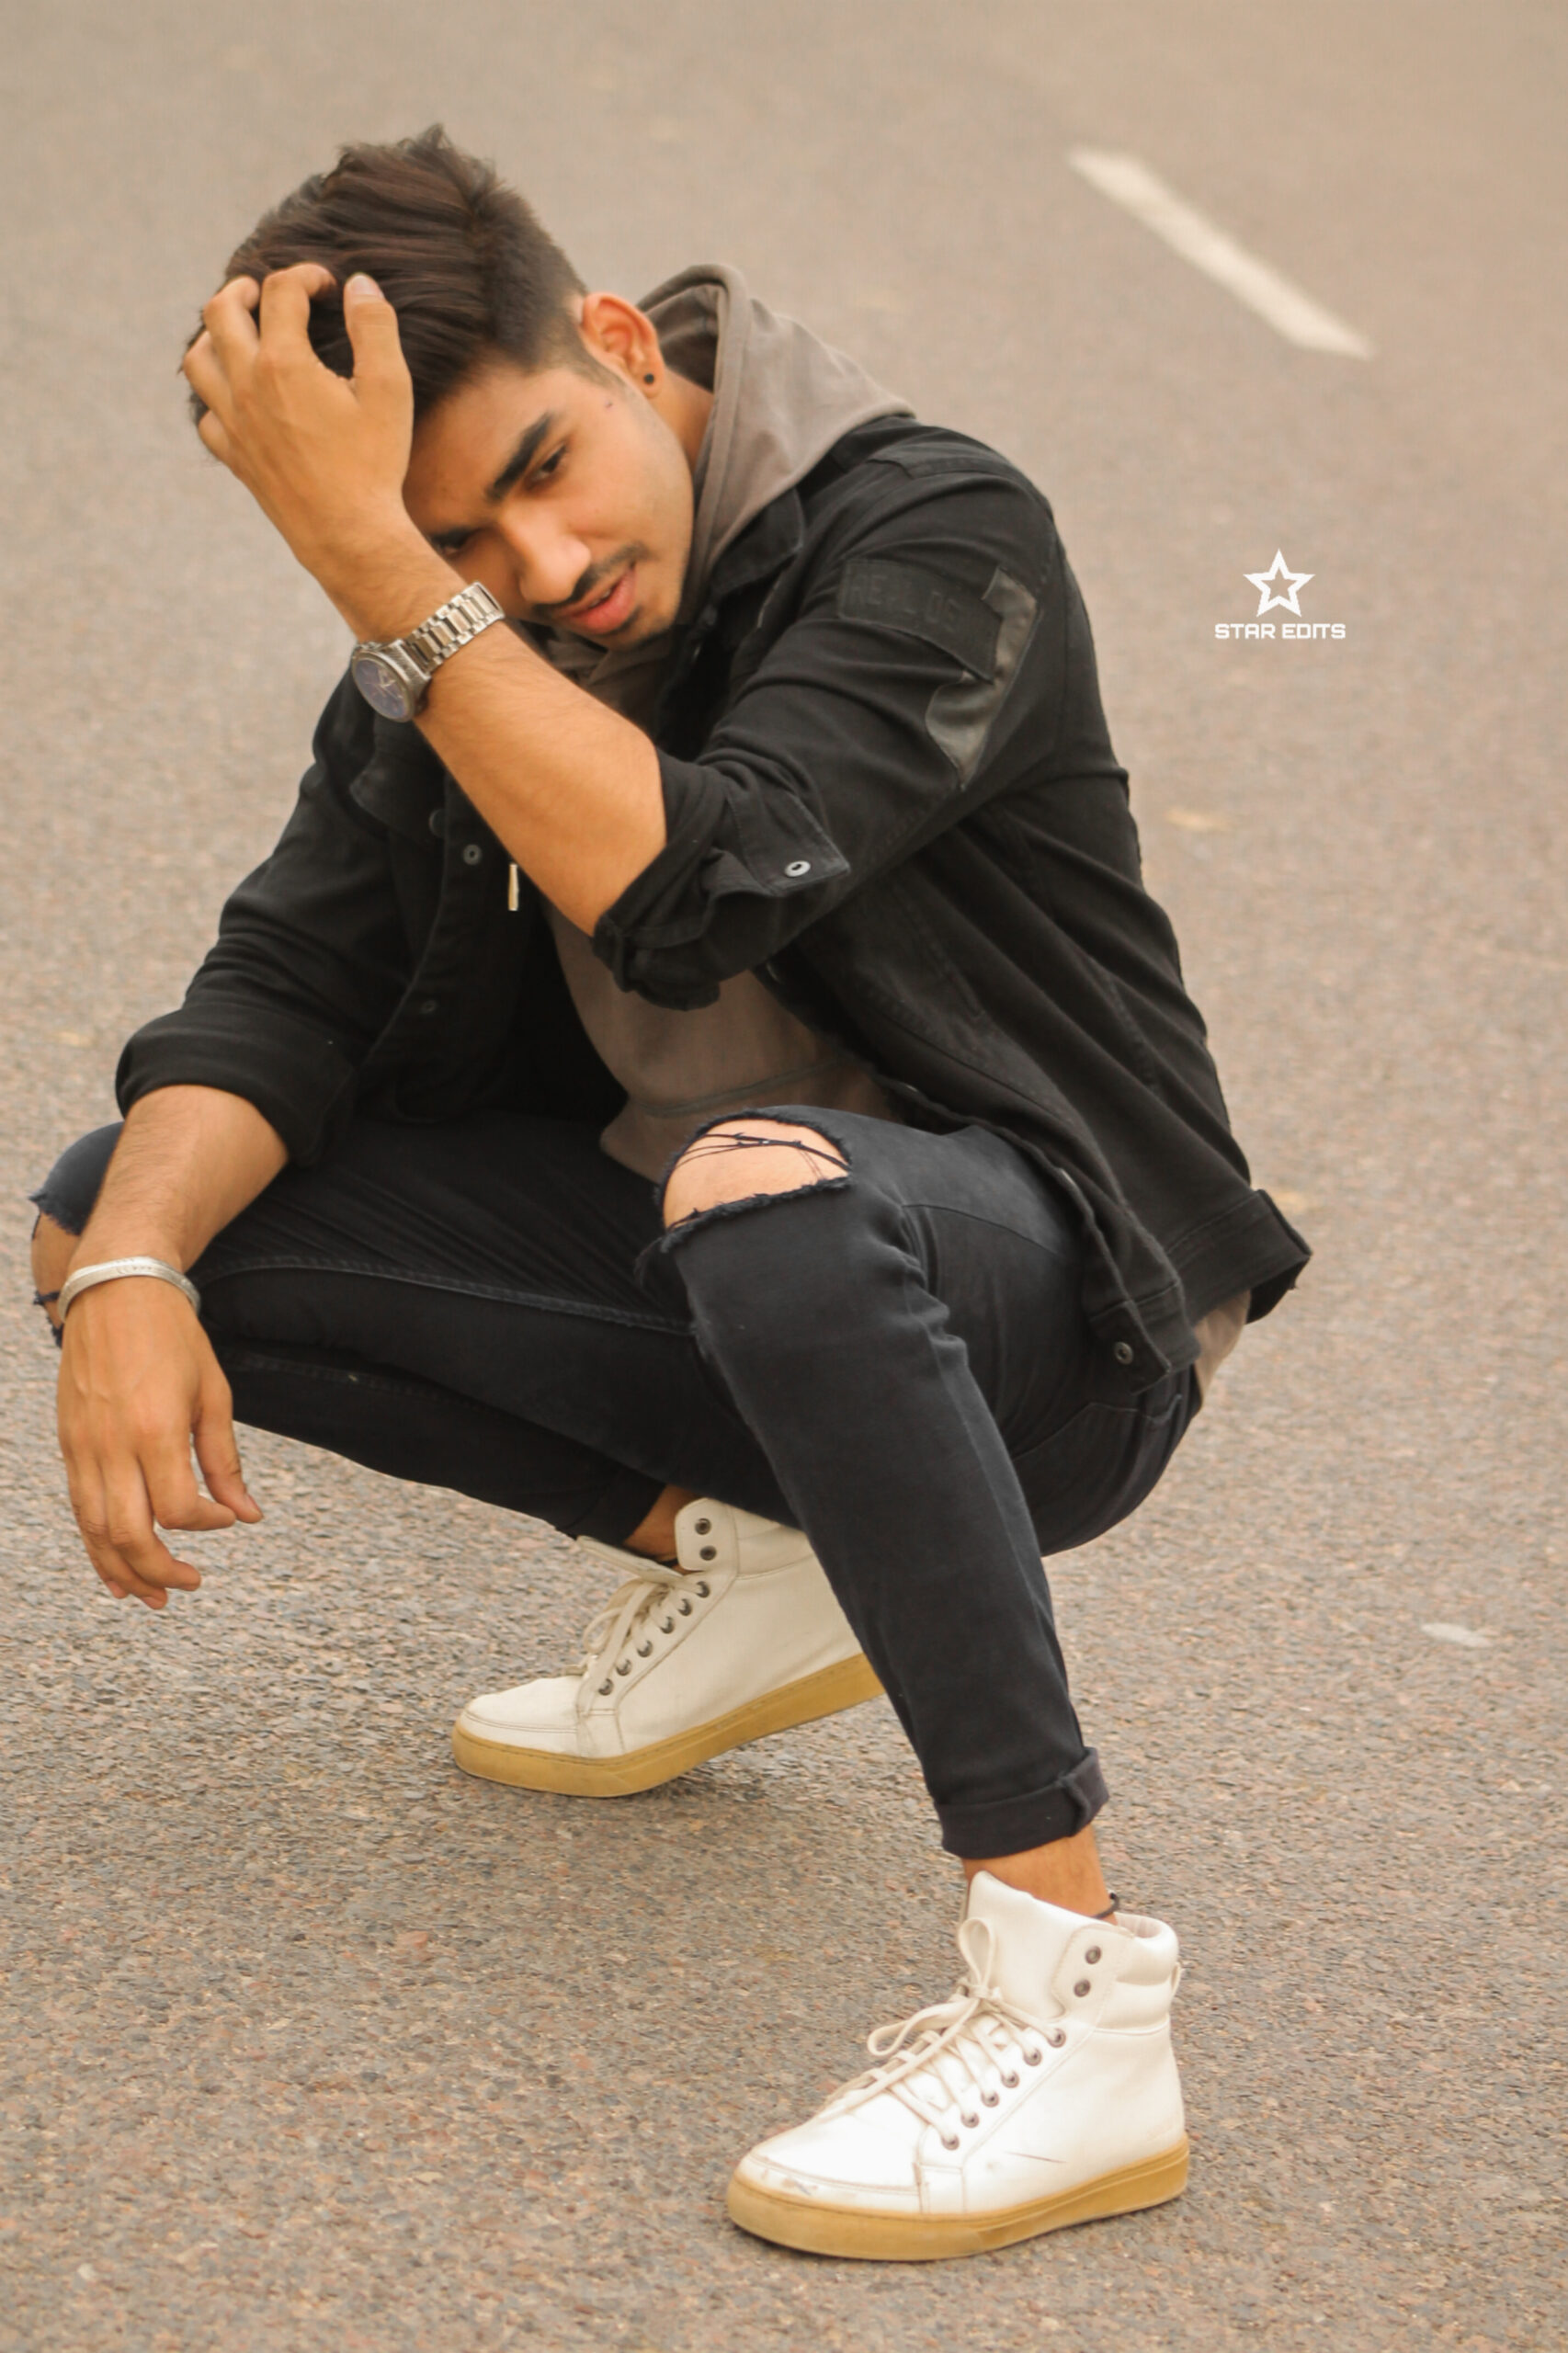 Aaftab Bhagarwa becomes the youth sensation of the country with his on point social media influencing